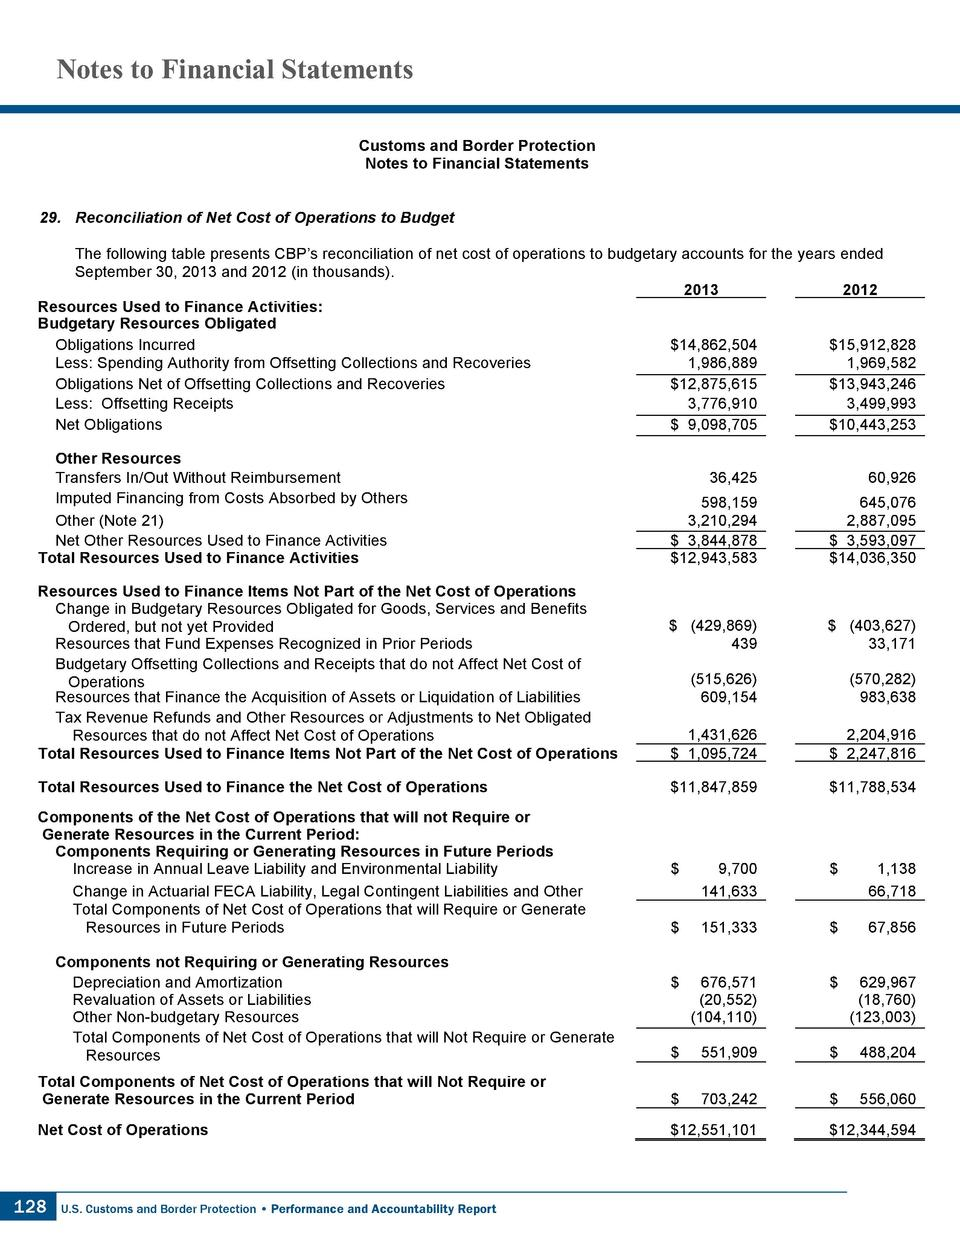 Notes to Financial Statements Customs and Border Protection Notes to Financial Statements 29. Reconciliation of Net Cost o...